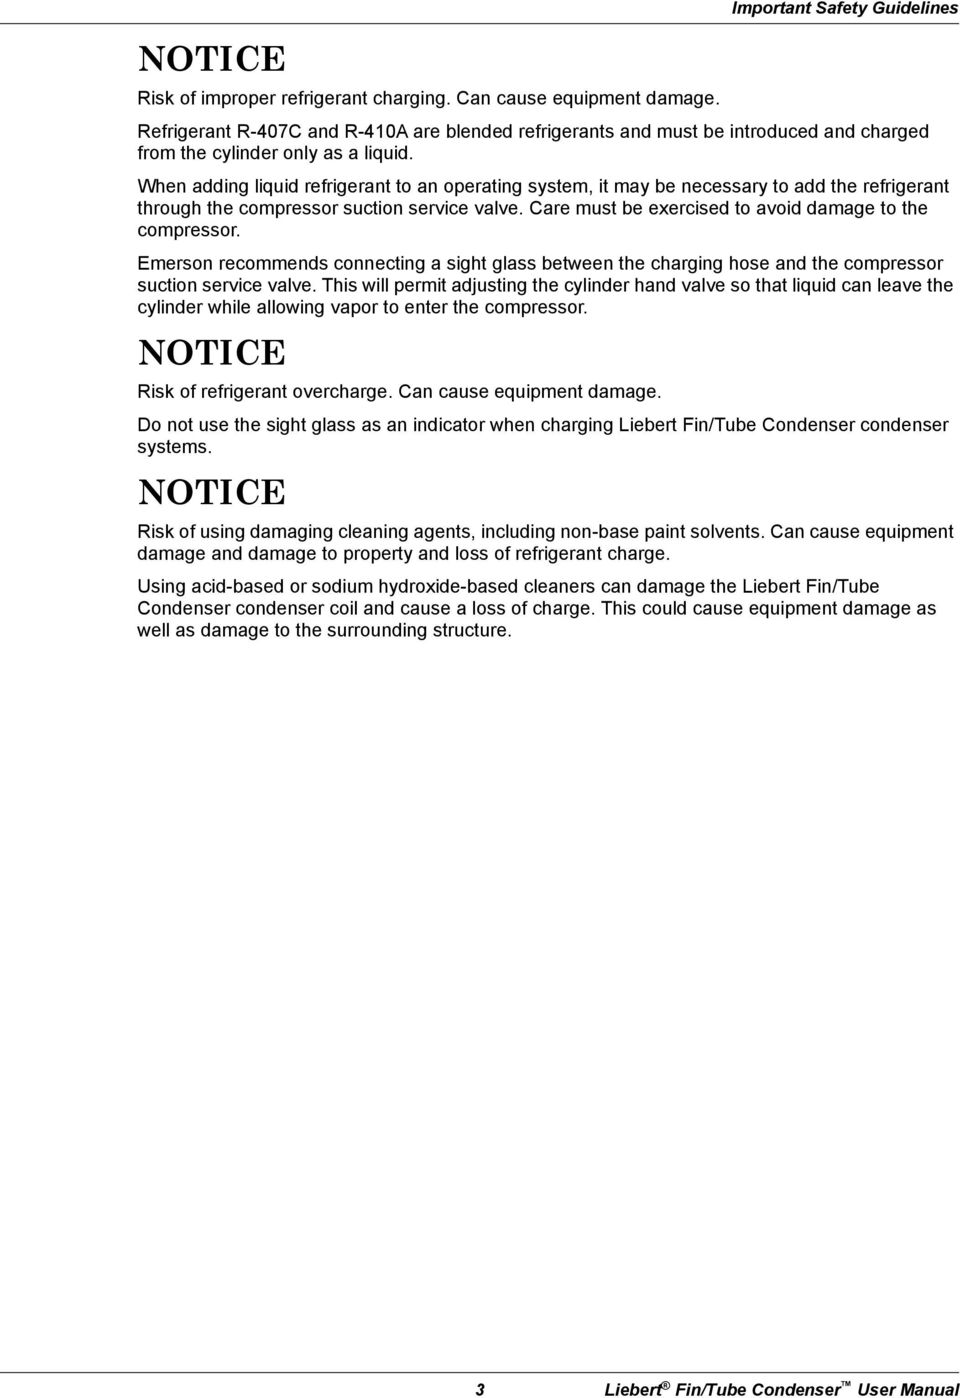 liebert air cooled fin tube condensers user manual 50 60 hz pdf when adding liquid refrigerant to an operating system it be necessary to add the